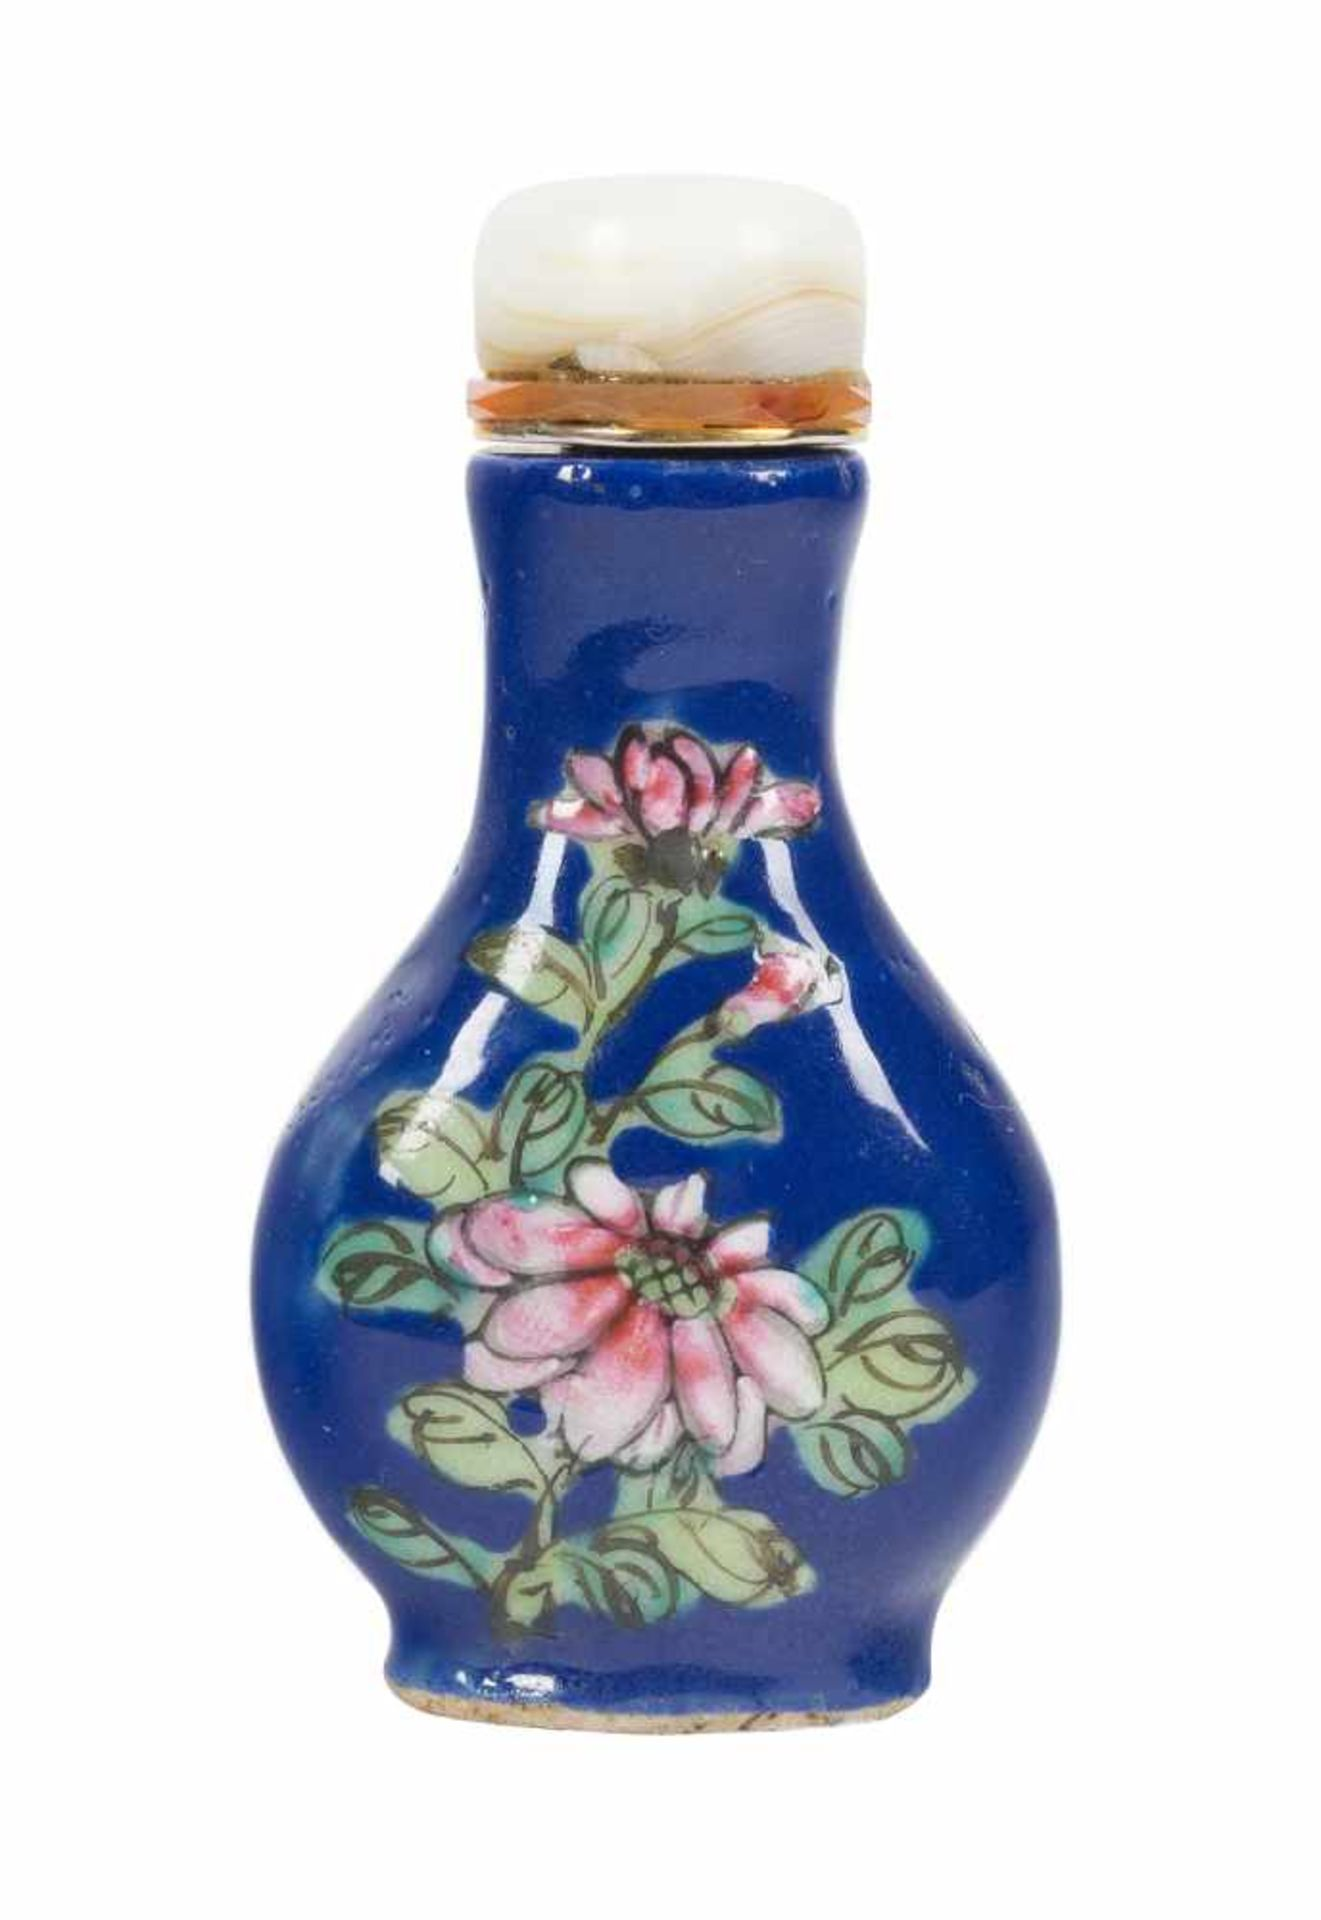 Los 24 - A famille-rose and blue enamel on glass 'flowering branches' snuff bottle. China. Qing dynasty. 19th